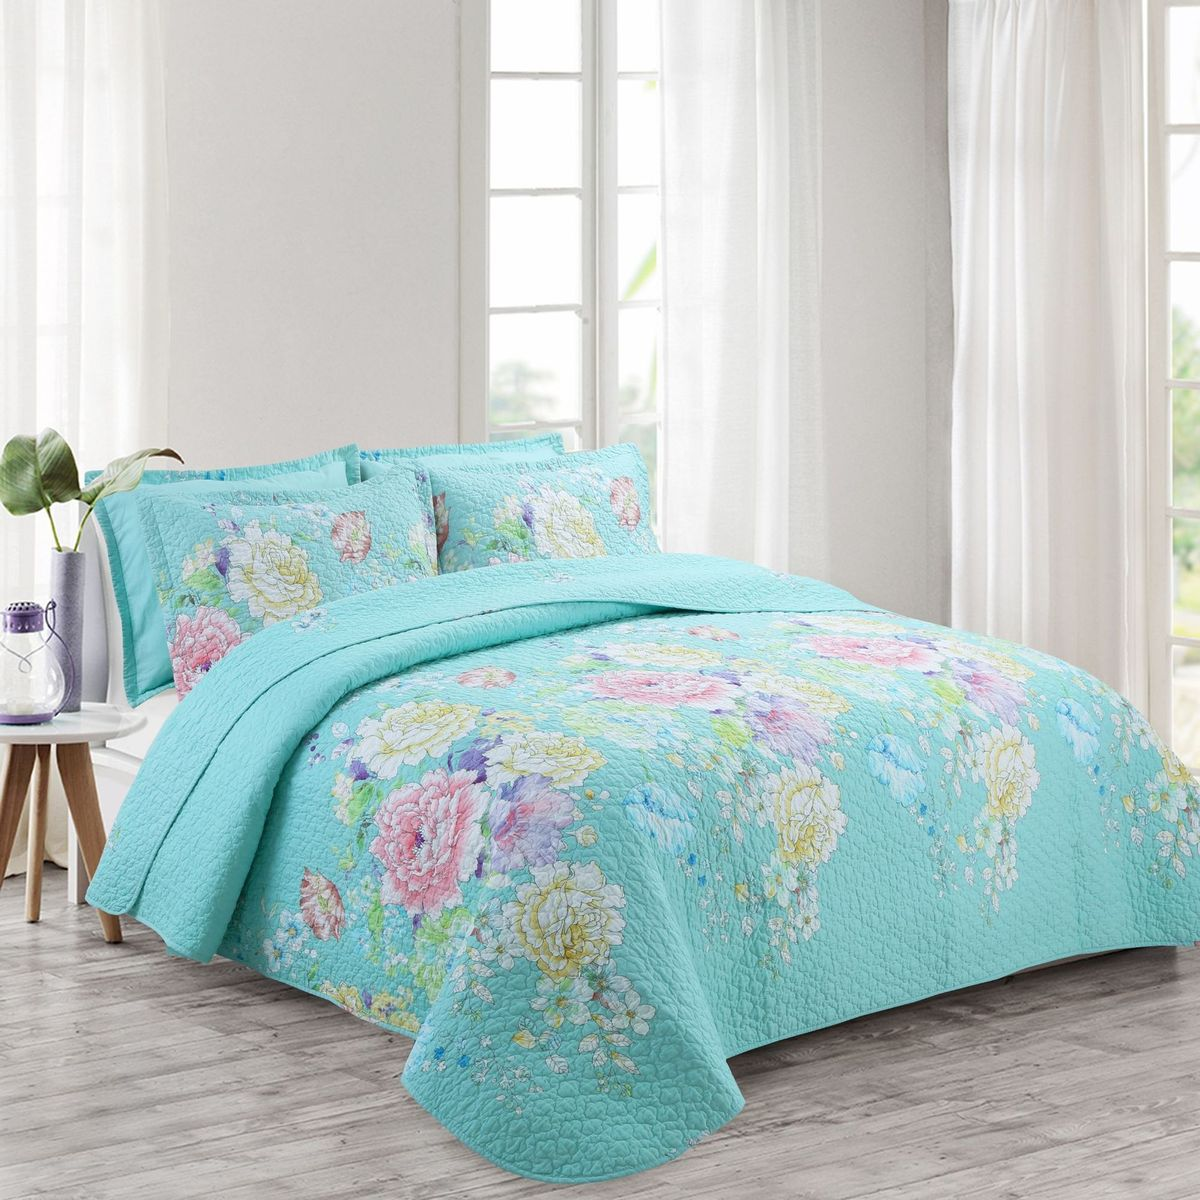 11 Colors DeMissir Flowers Print Quilt Set Cotton Summer Thin Air Condition Comforter bedding sets Bed Cover Blanket Bedspread